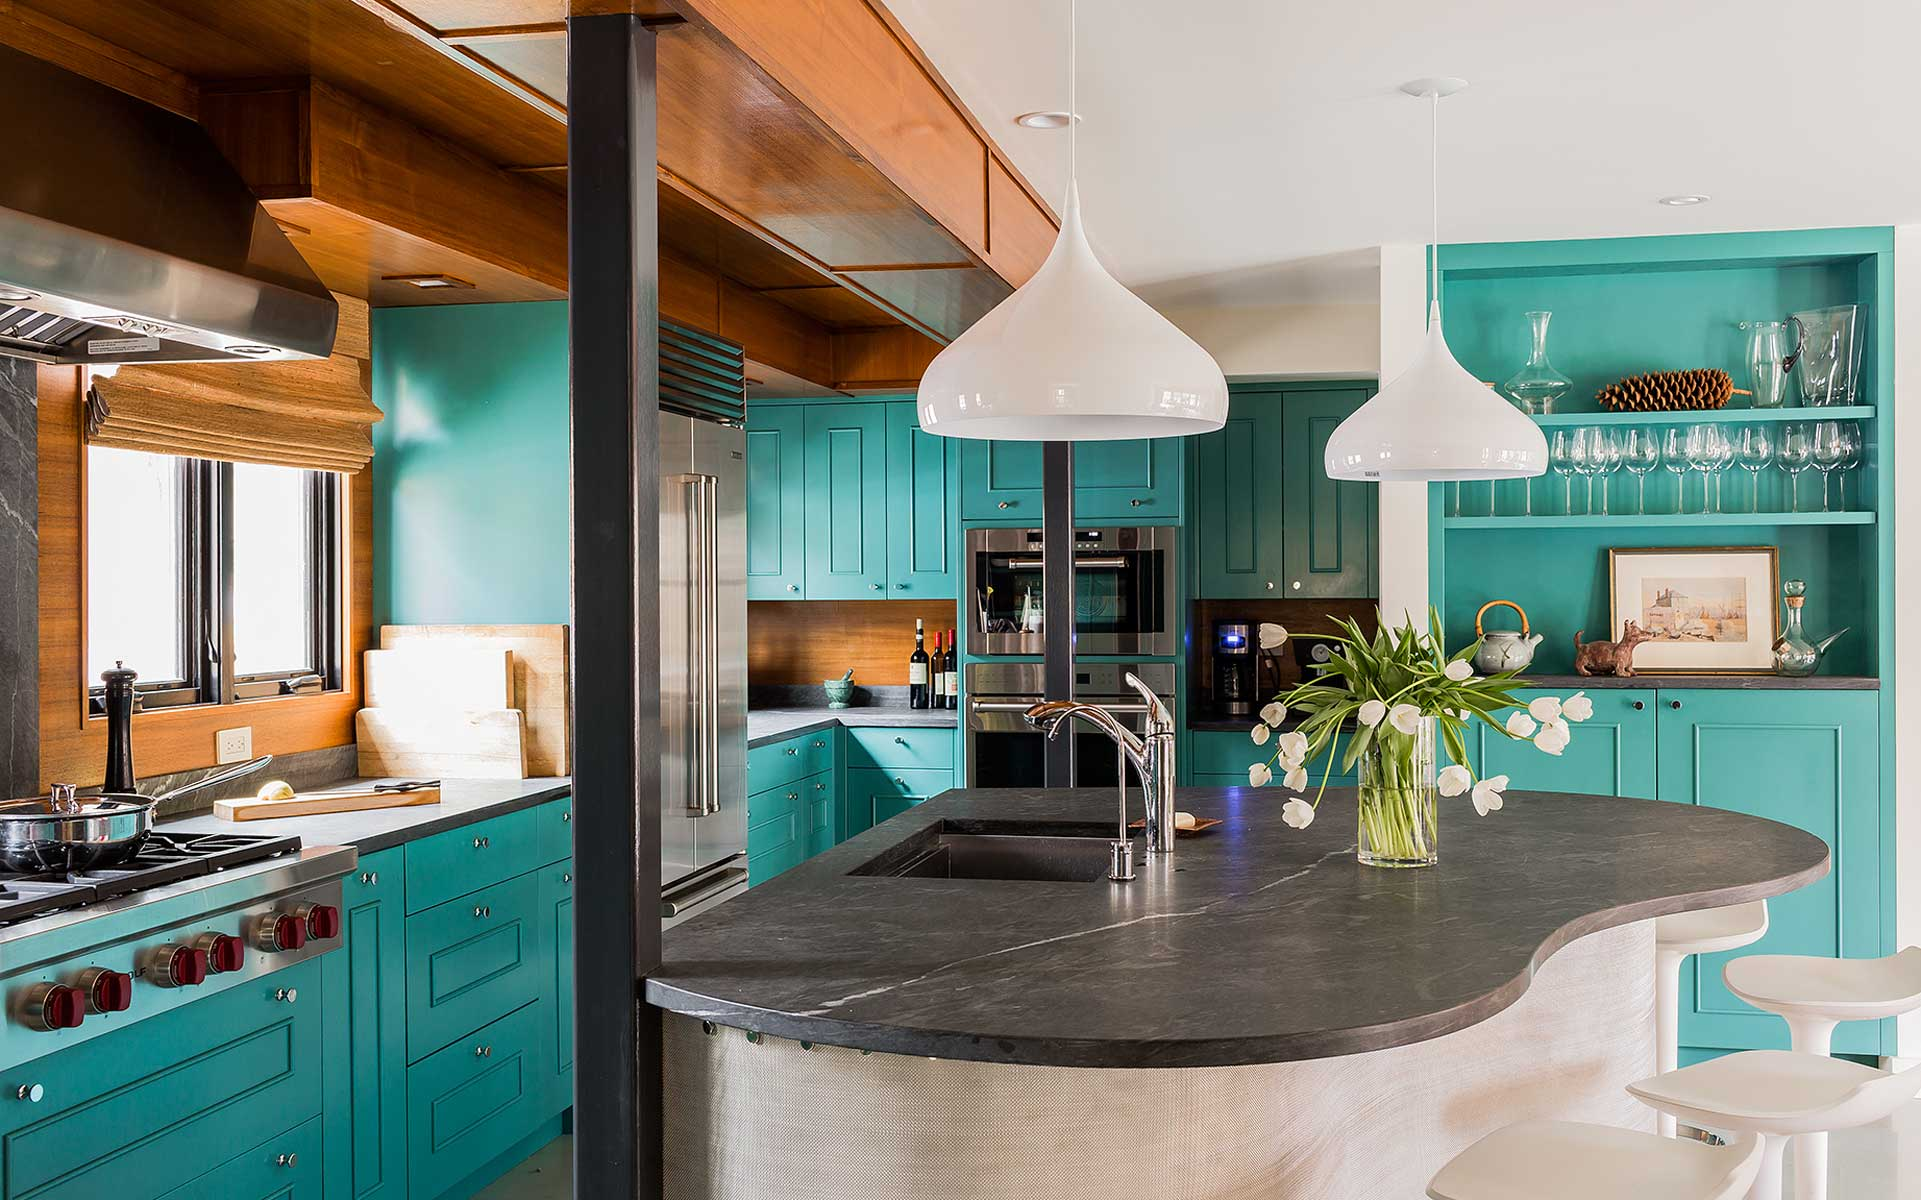 Turquoise Kitchen Design Ideas: A Lot of Decoration Options. Streamline phsilosophy of the space with large gray island